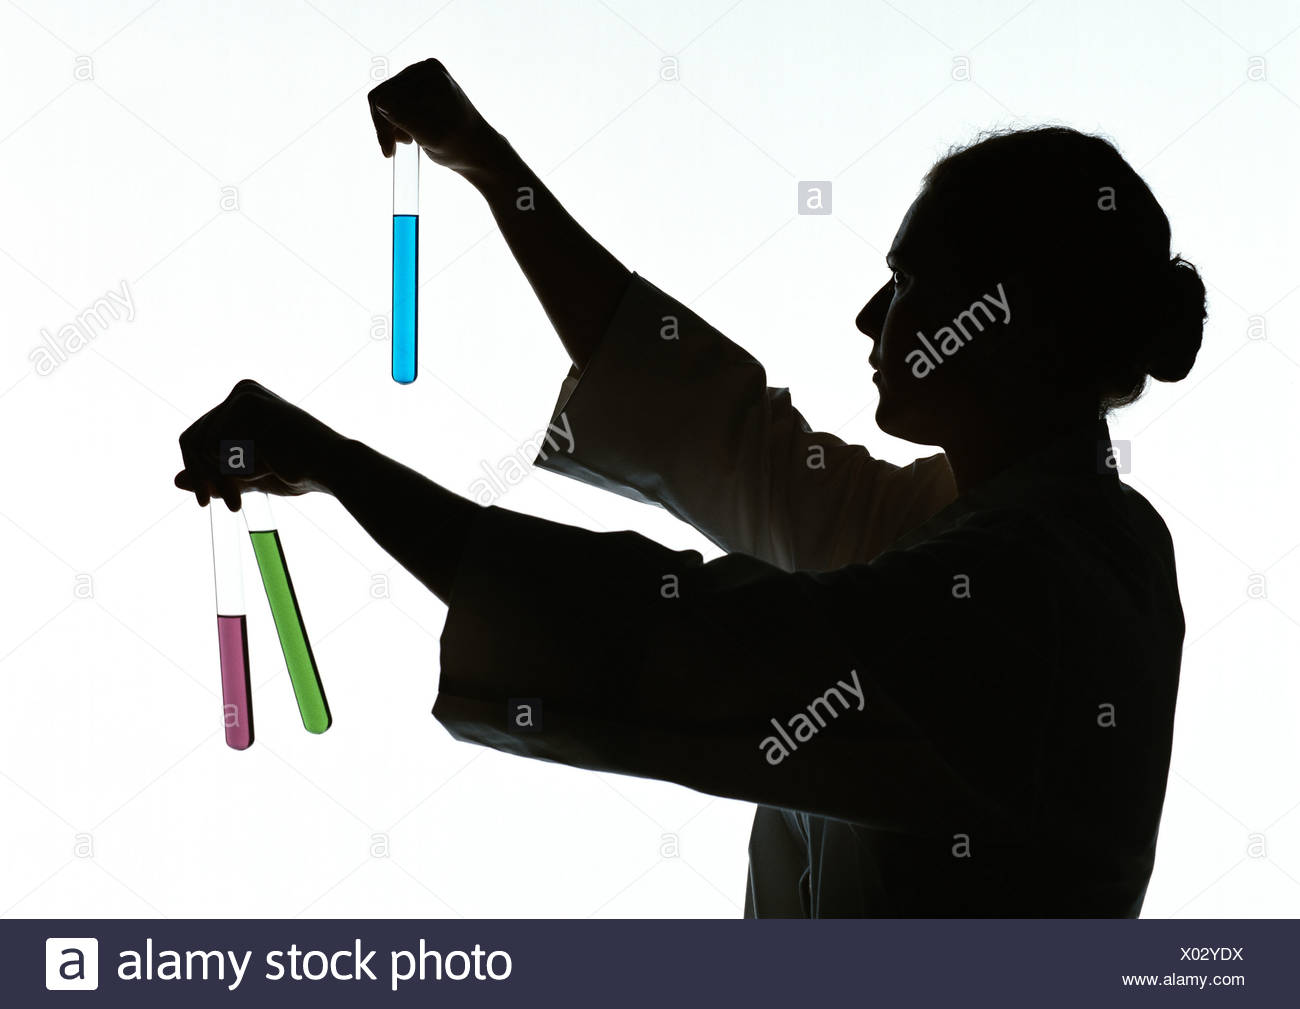 Woman holding test tubes containing different colored liquids, silhouette. - Stock Image